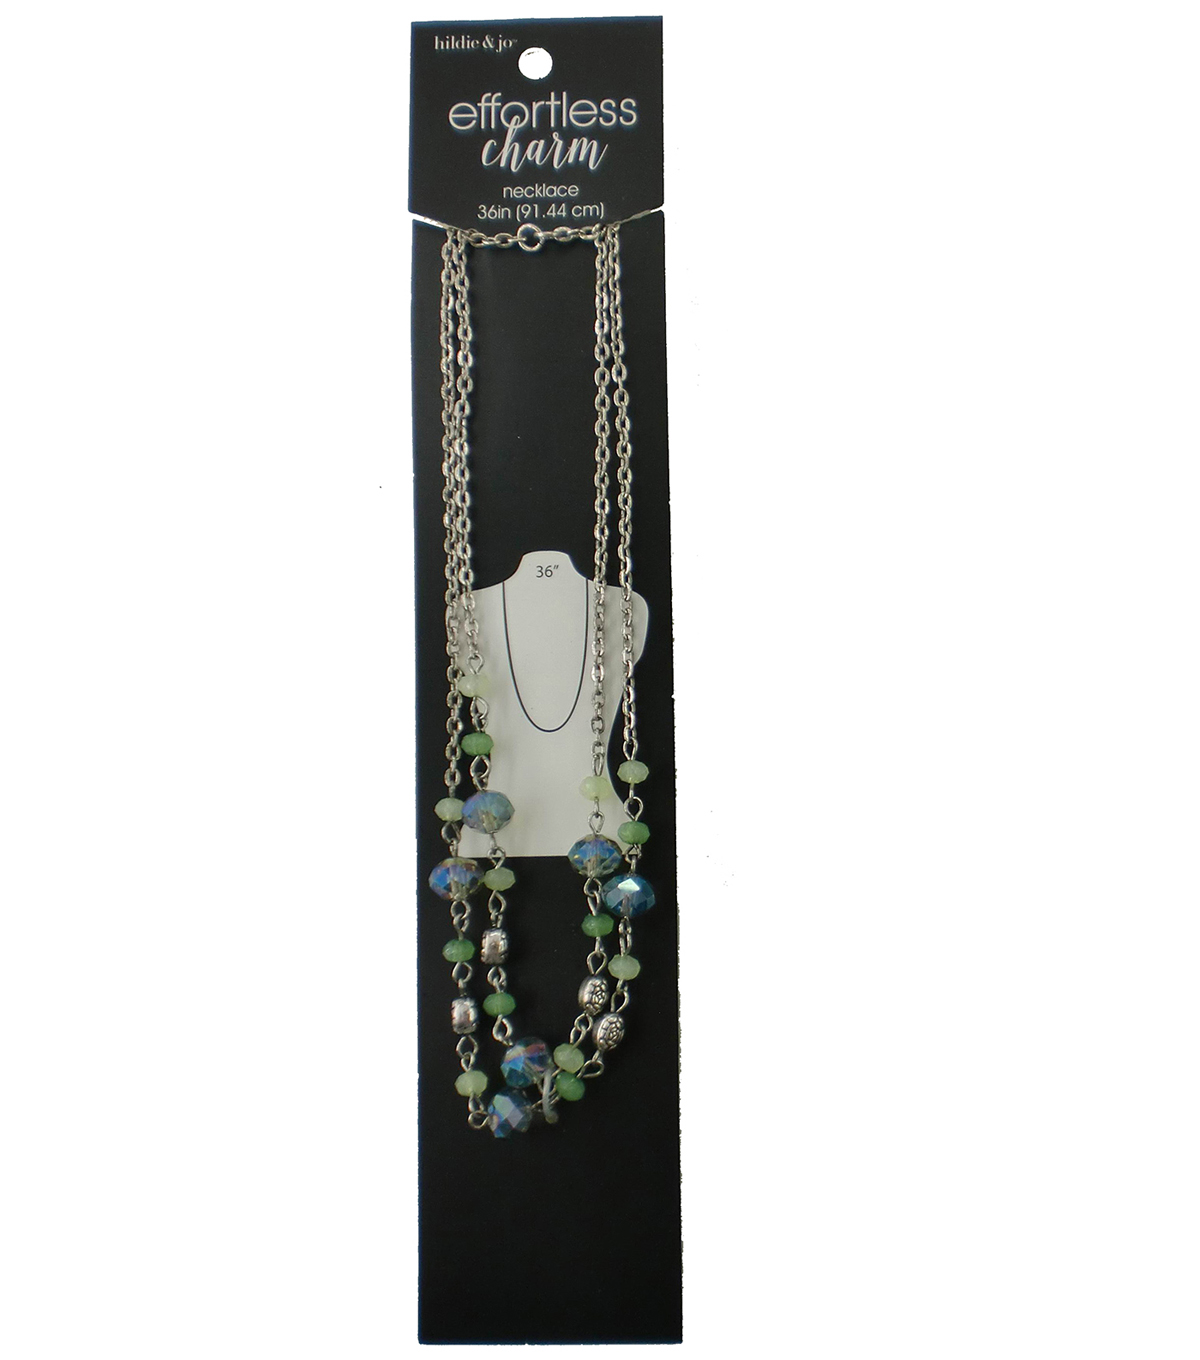 hildie & jo™ Effortless Charm 36'' Silver Necklace-Blue/Green Bead